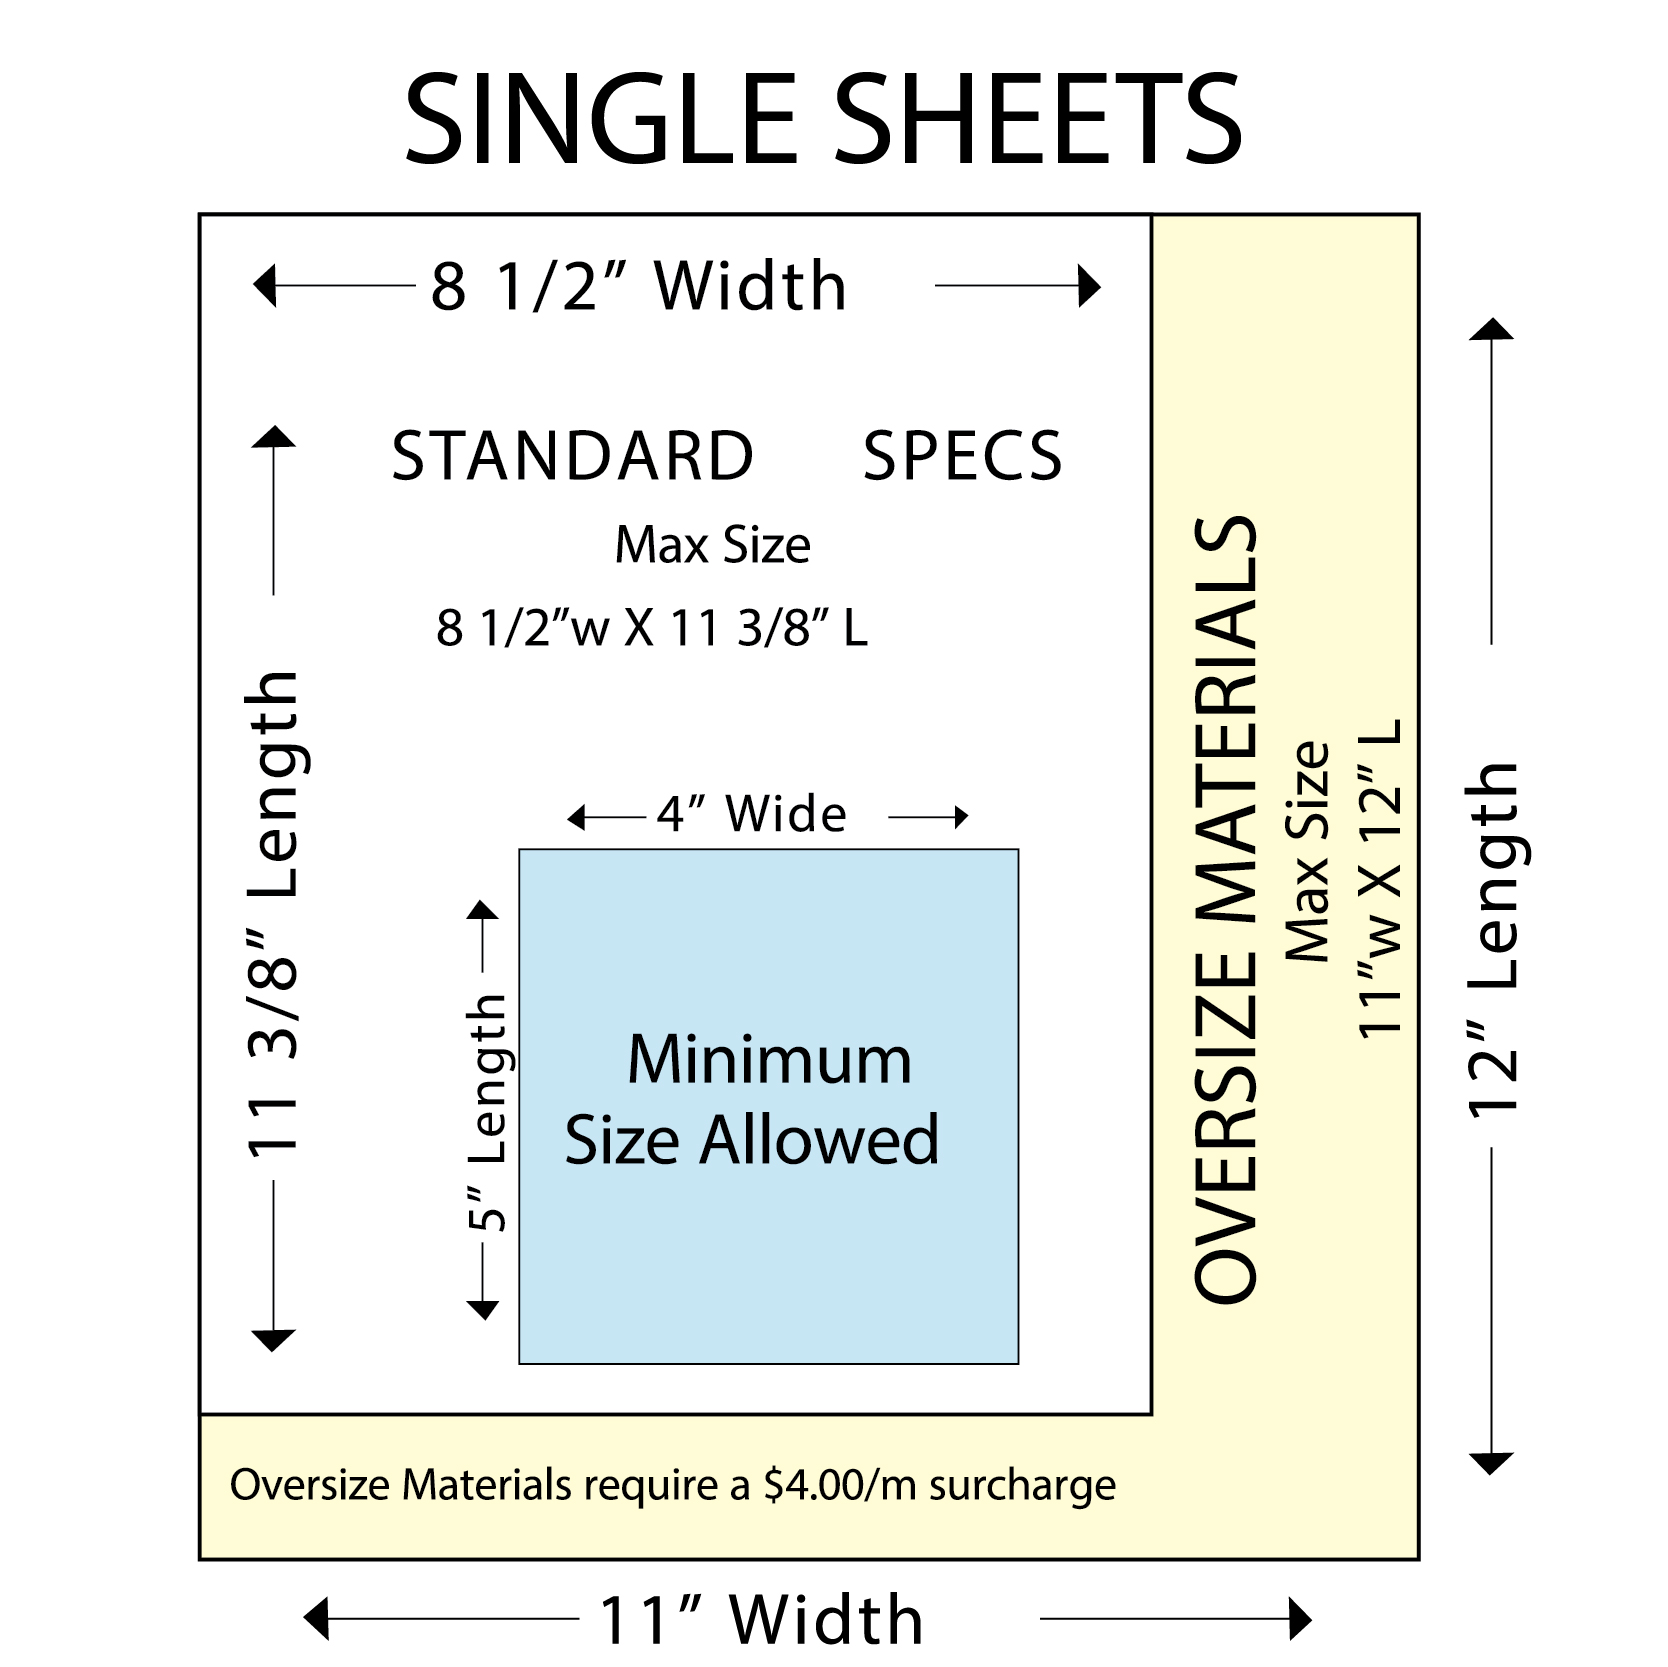 PrePrint Spec for Single Sheets